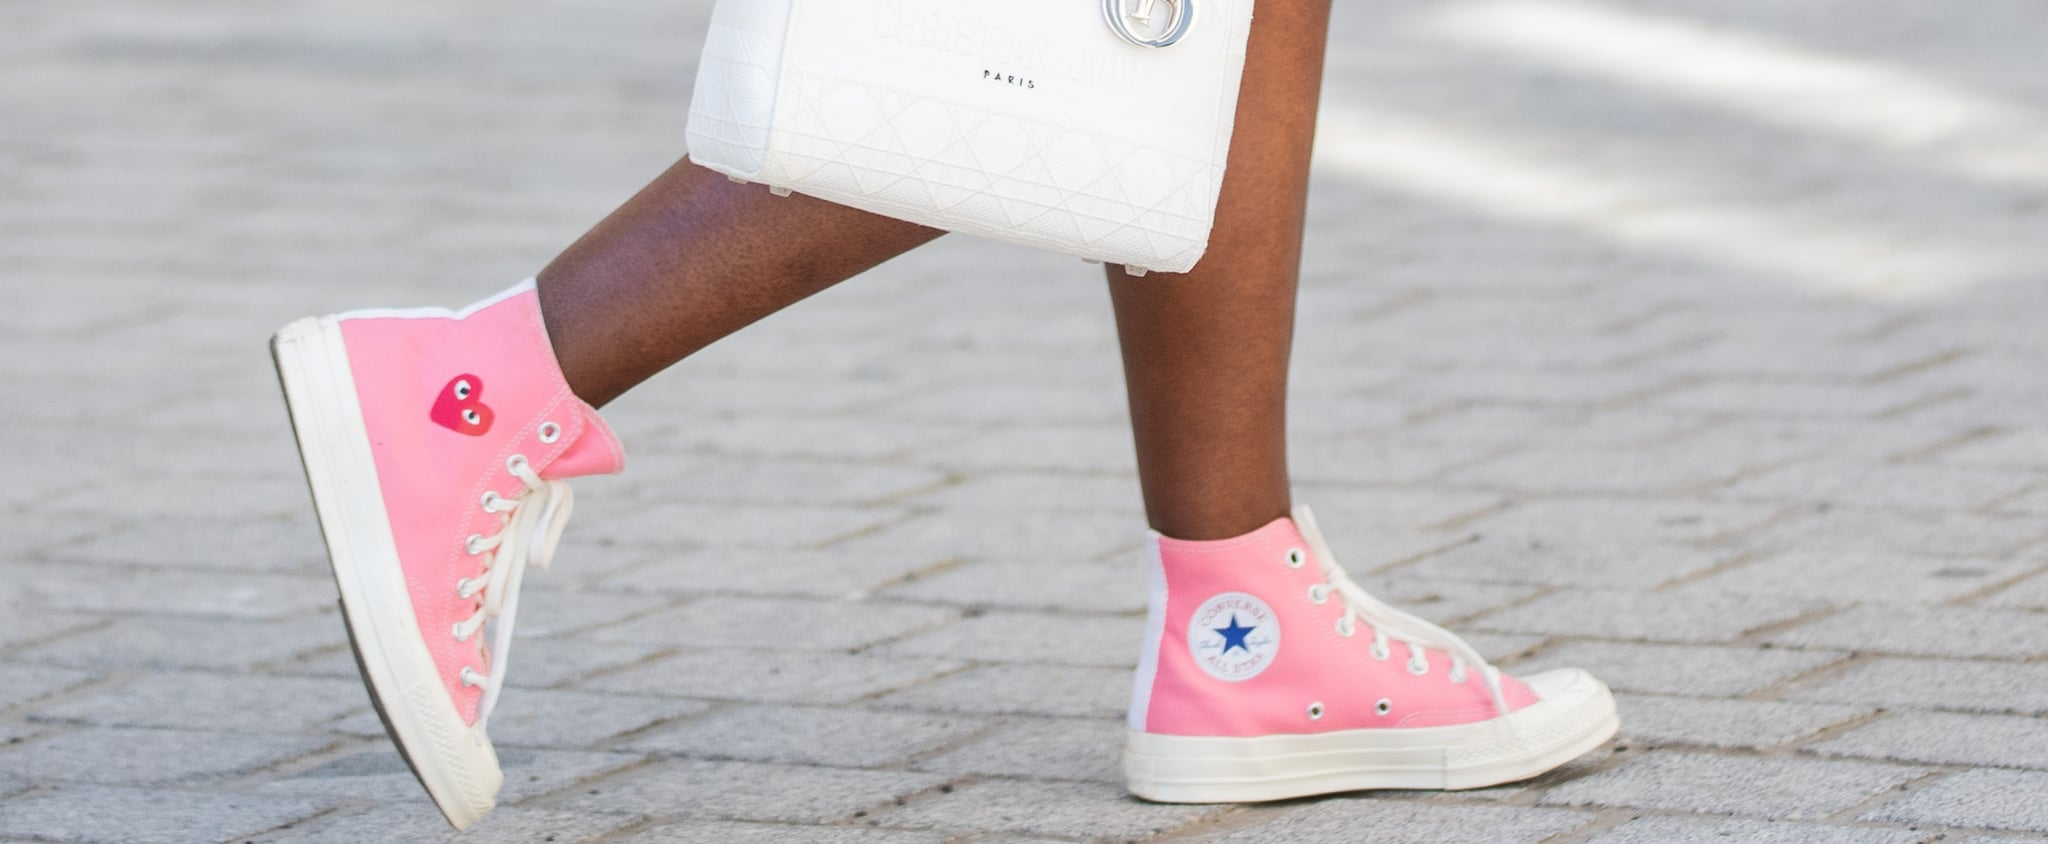 5 Sneaker Trends to Shop For Summer 2021